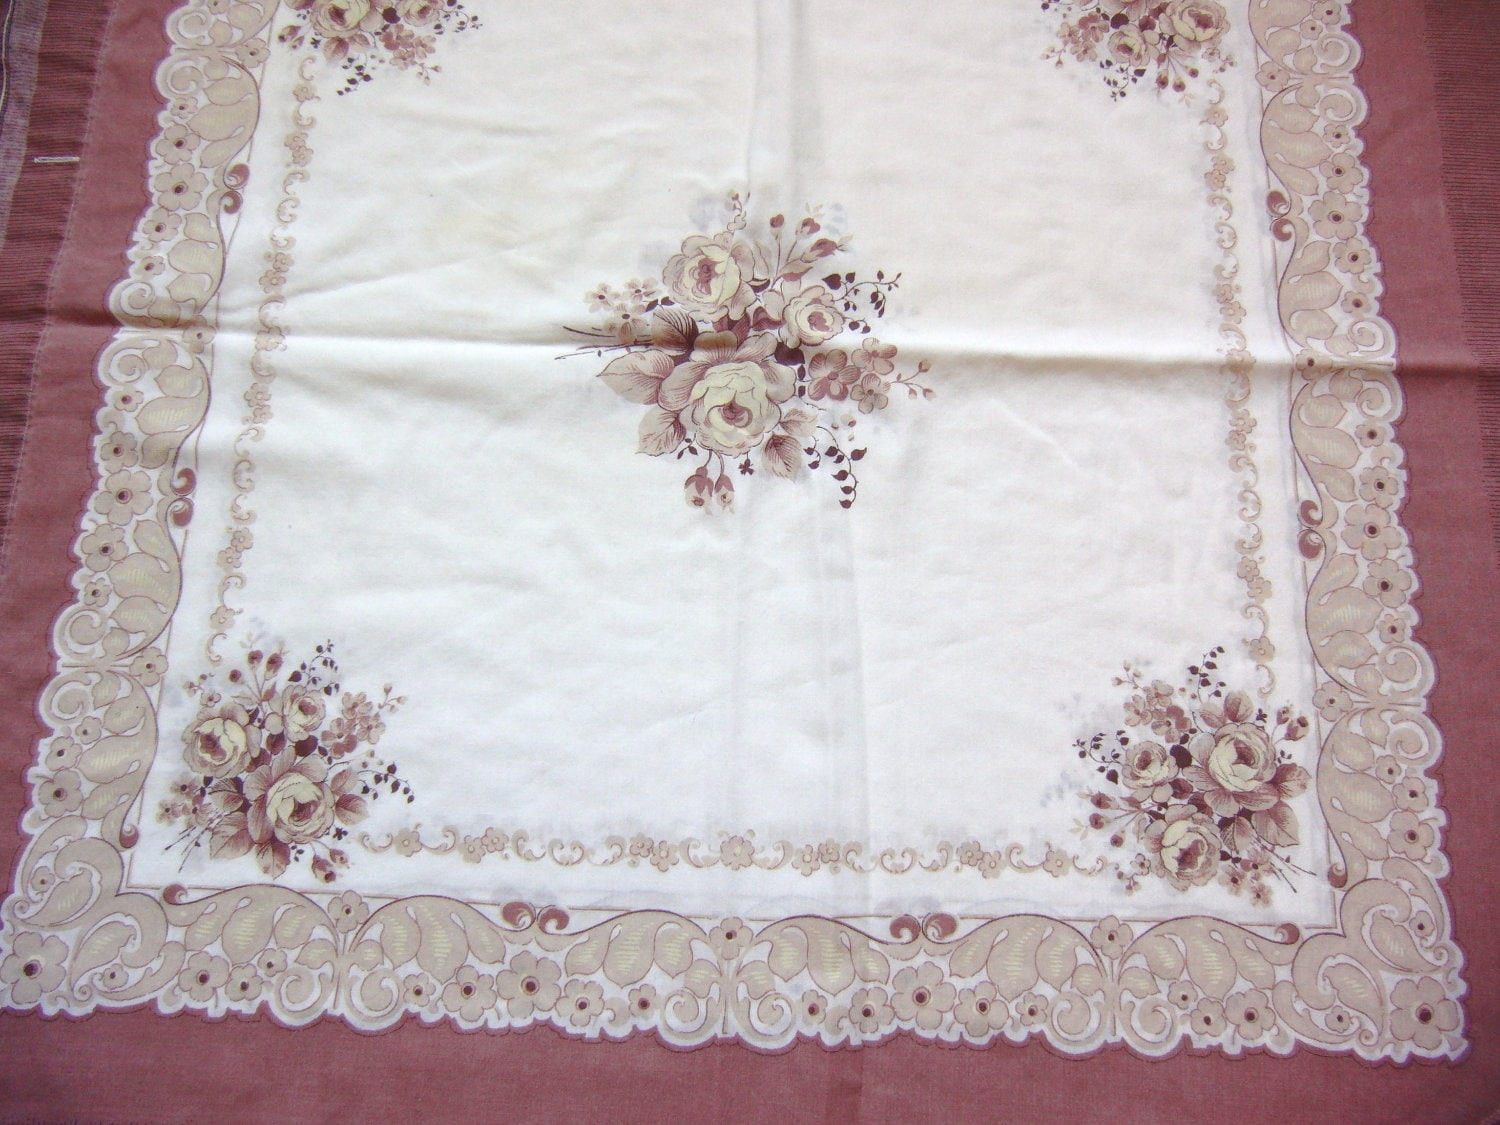 Vintage Pillow Sham Shabby Chic by GardenLaundry on Etsy